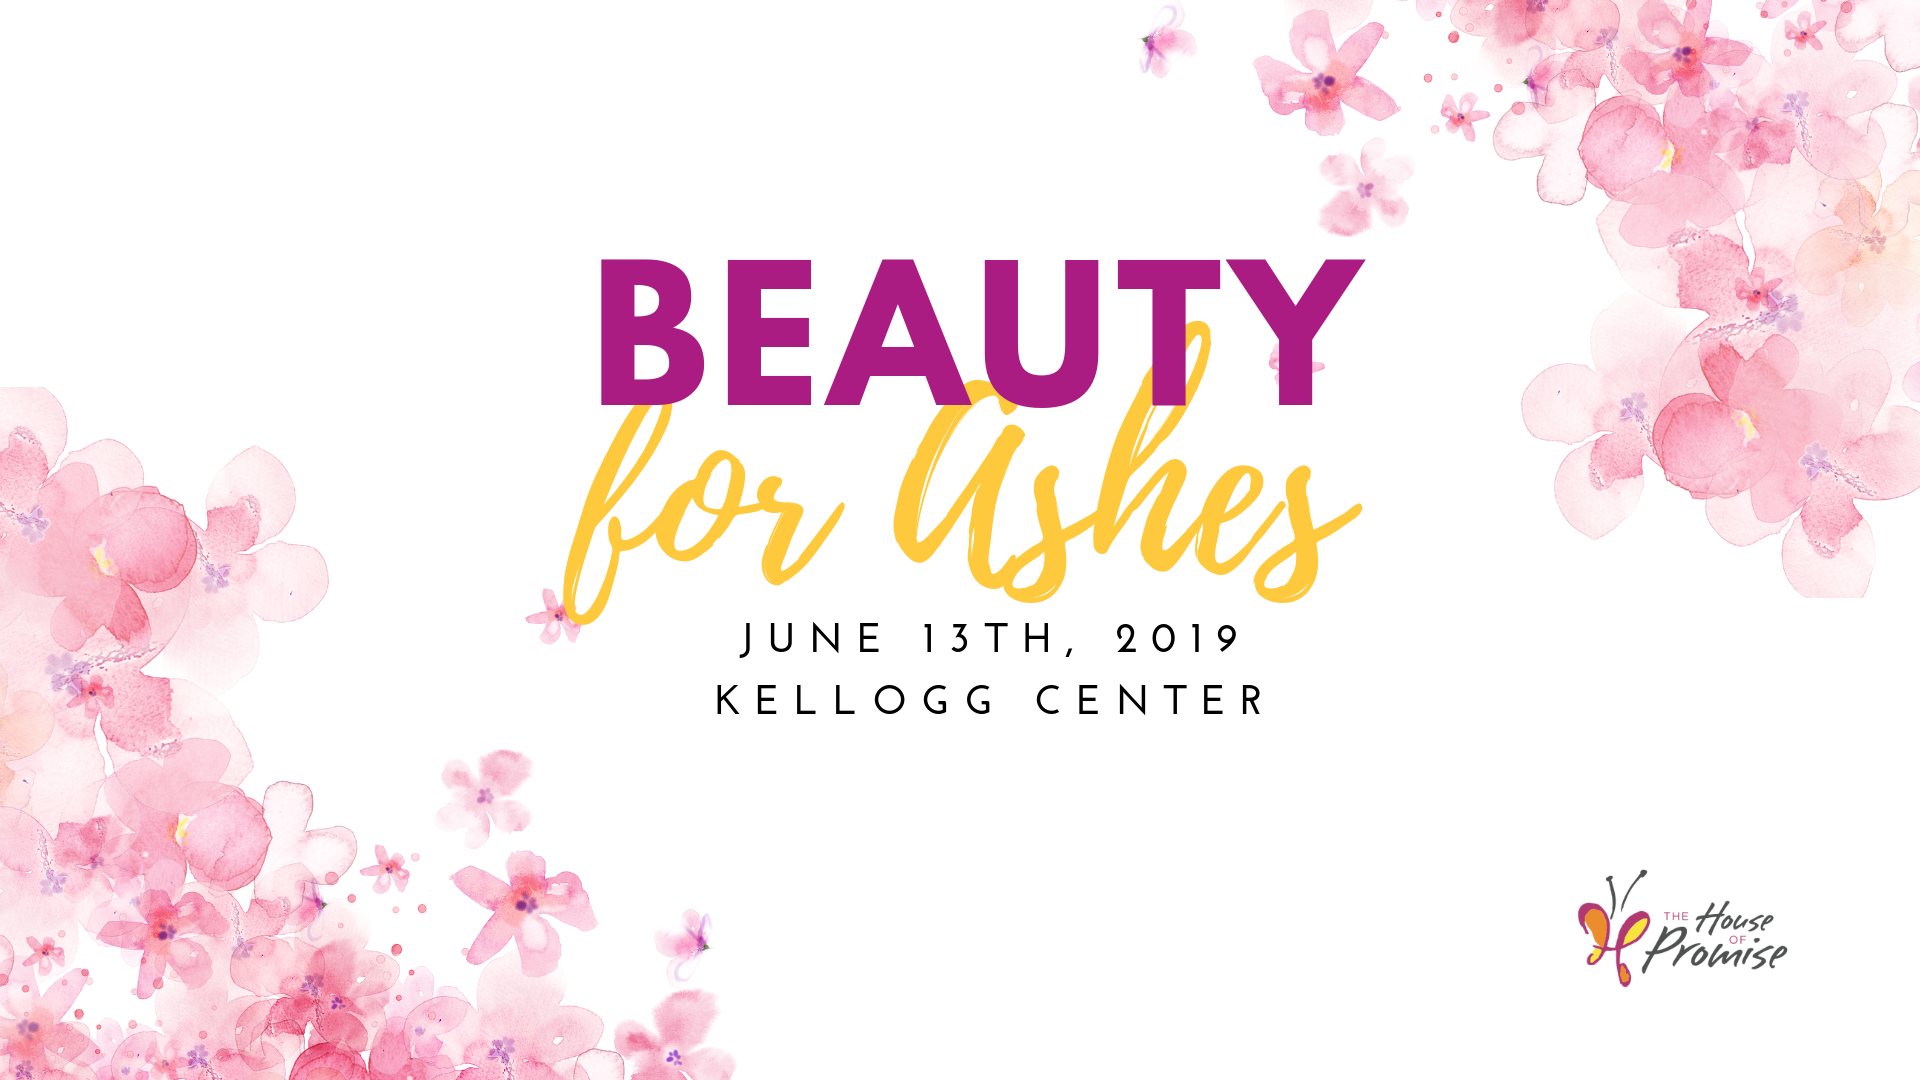 Beauty for Ashes fundraiser charity event lansing michigan